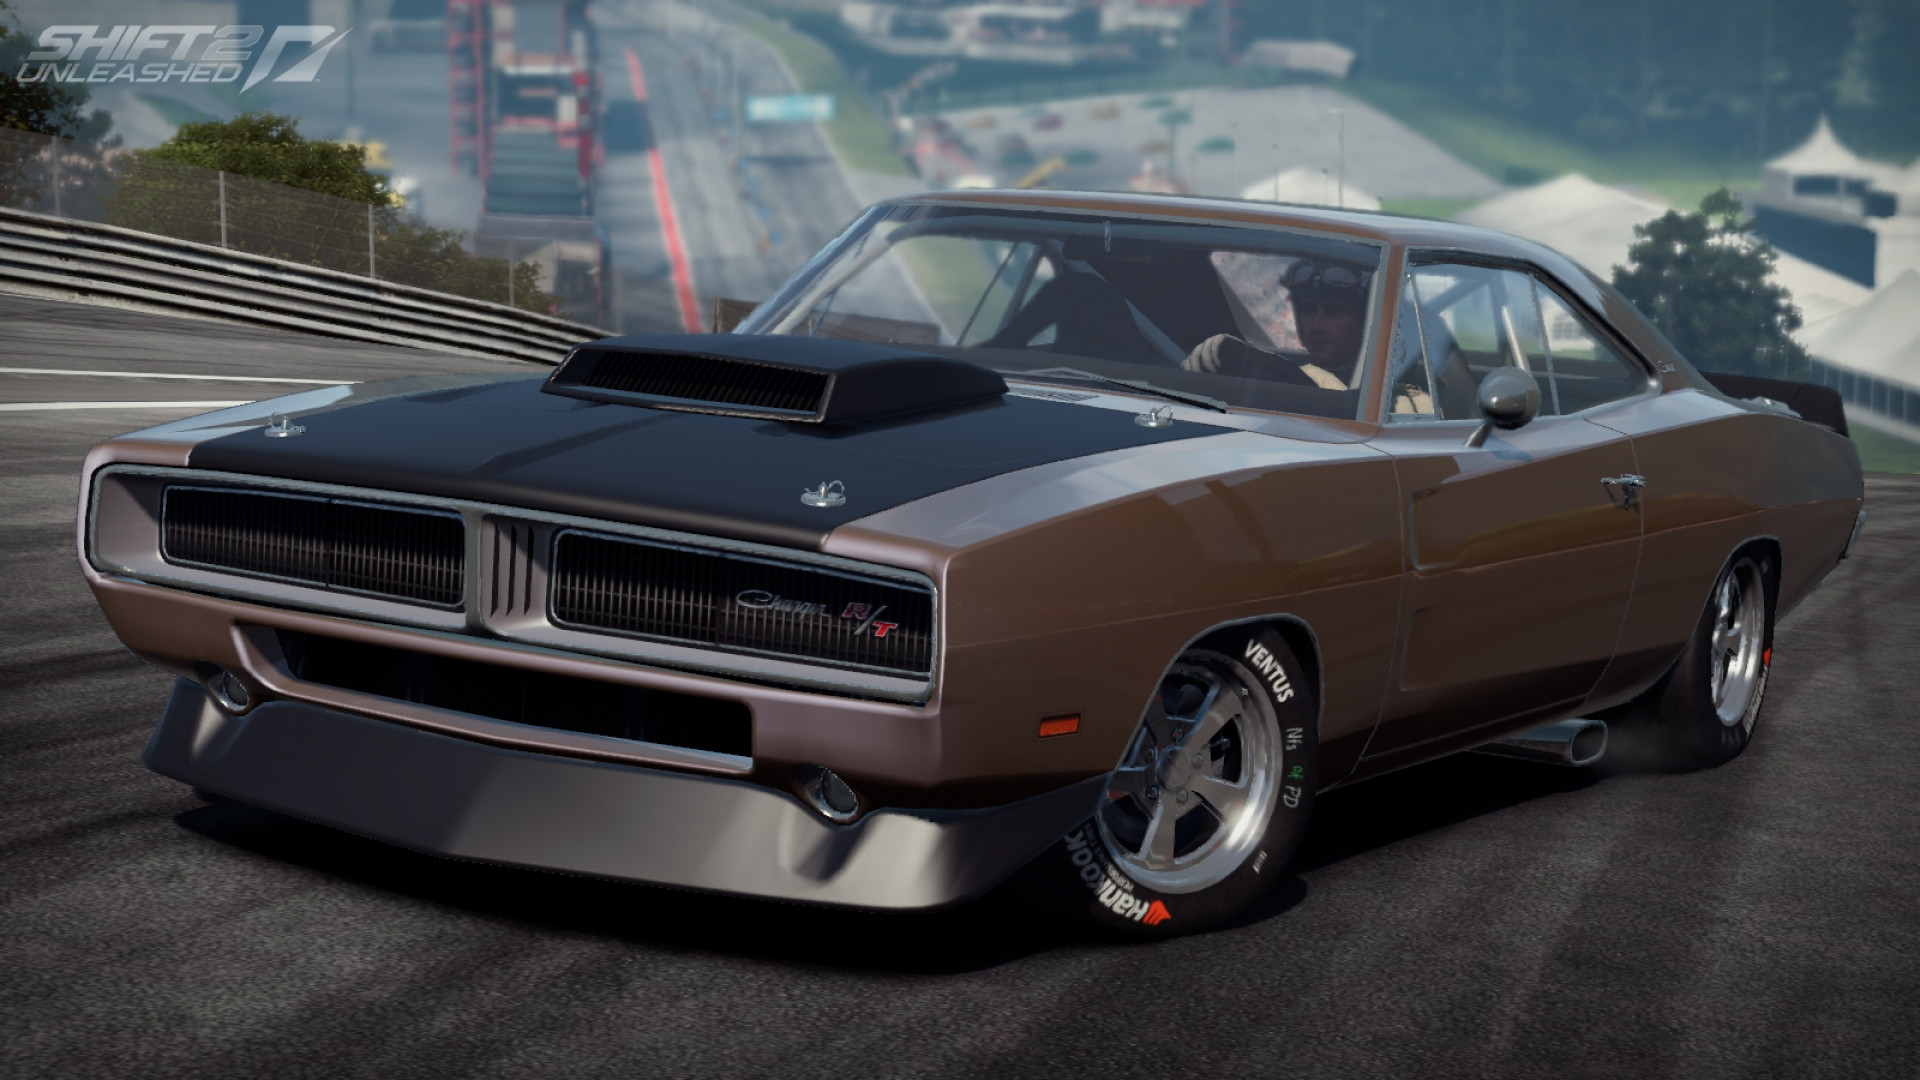 1970 Dodge Charger Wallpapers 1920x1080